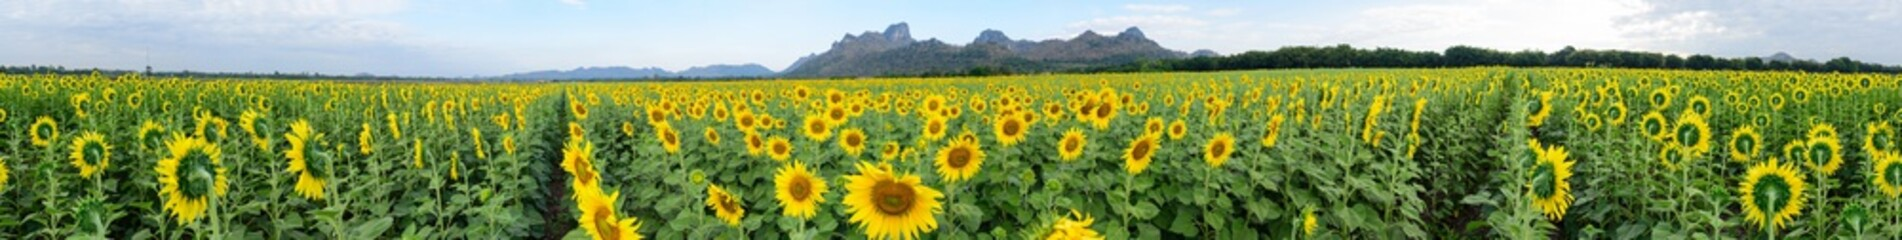 360 degree panorama of Sunflower field at the mountain